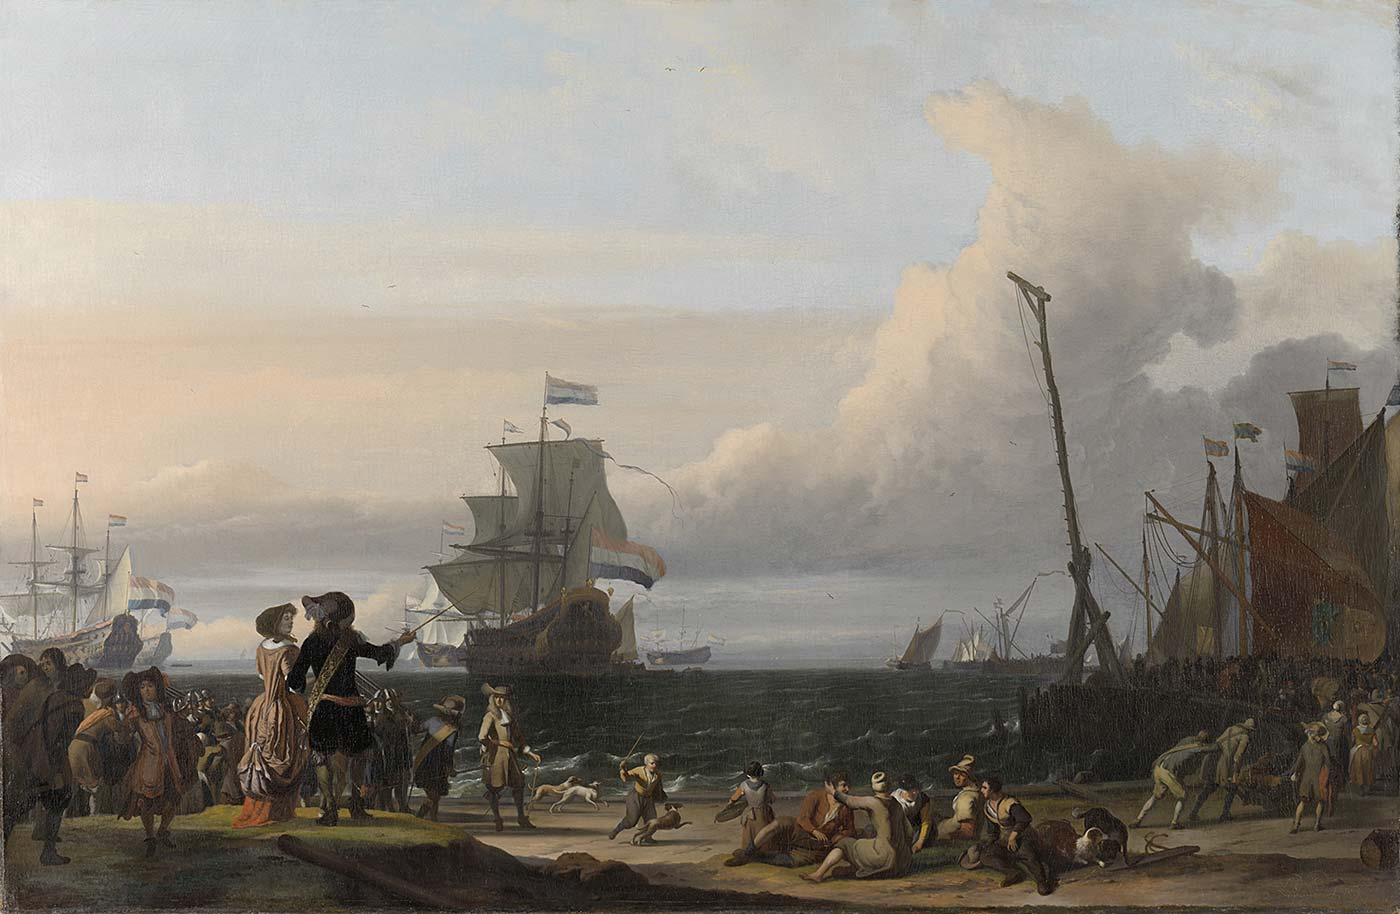 A ship in harbor, flying its flags. Ludolf Bakhuizen.